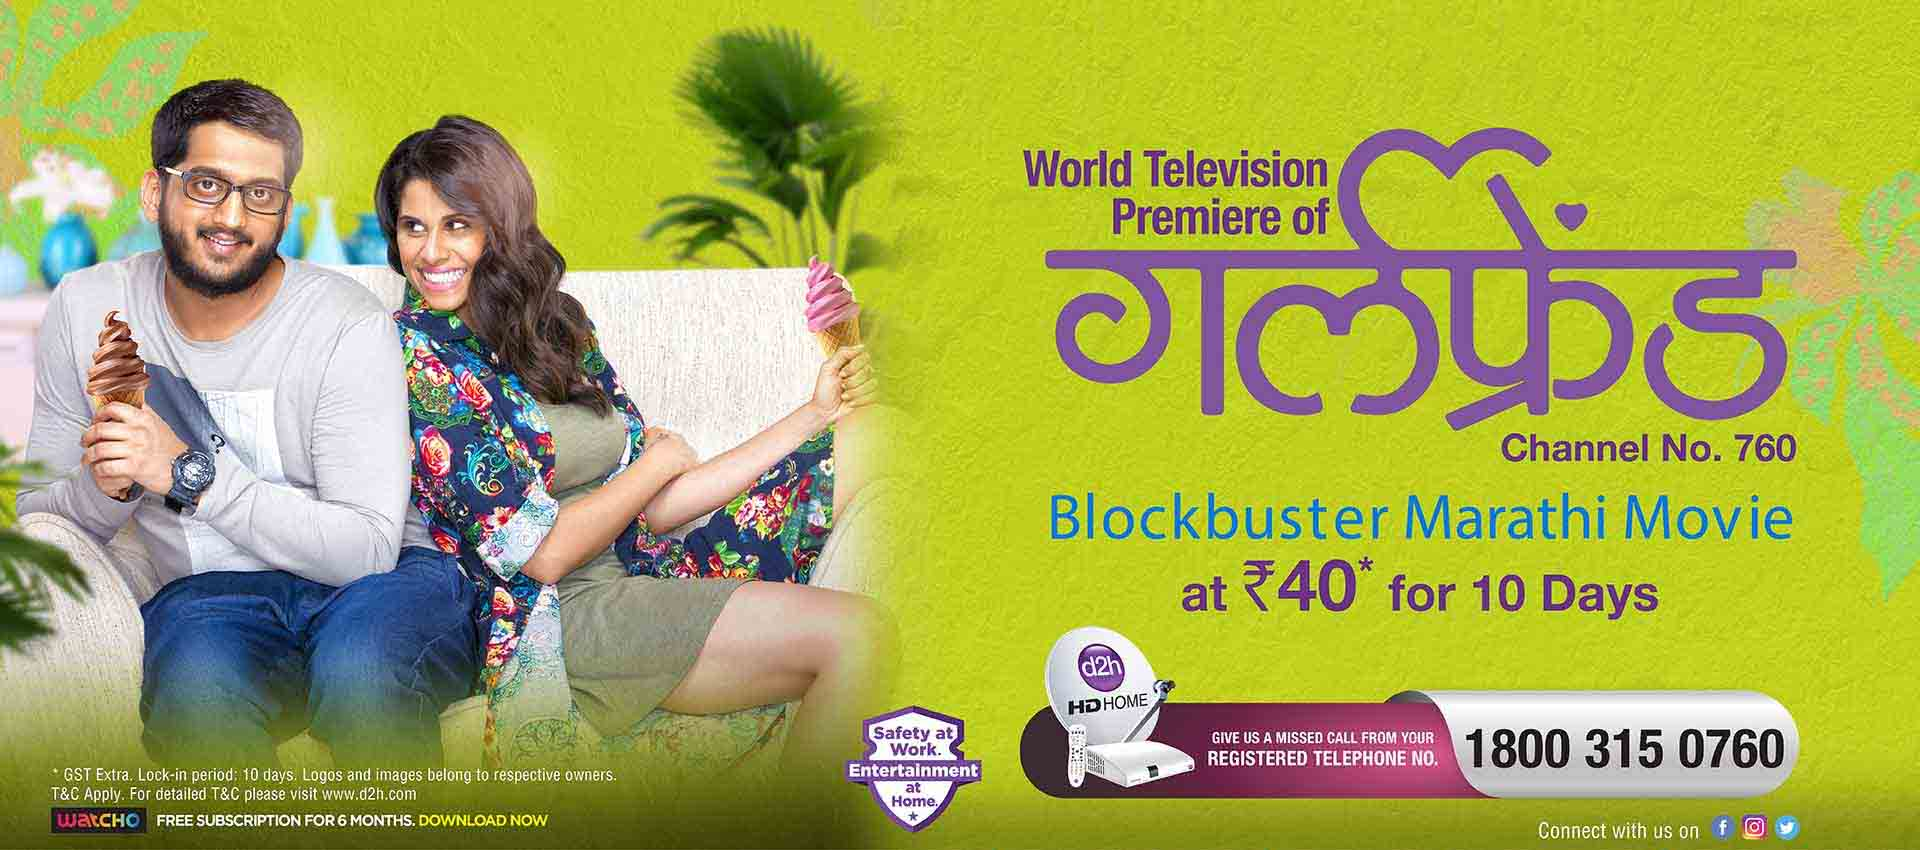 Dish TV and D2H launch service channel dedicated to WTP of Marathi Movie 'Girlfriend'